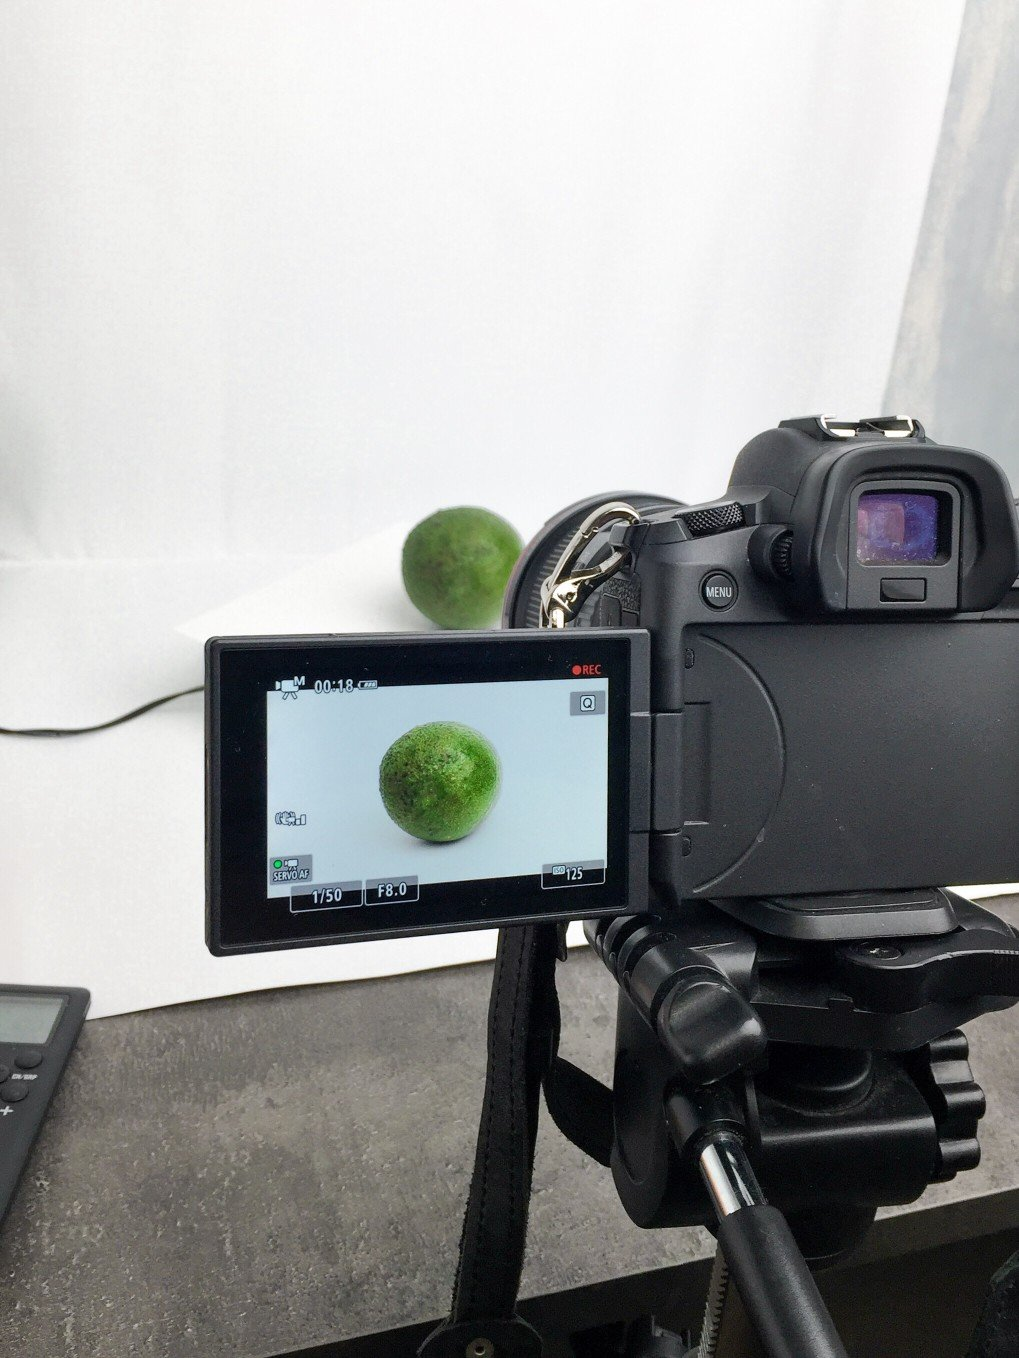 The Bare Essentials: Product Photography on the Cheap